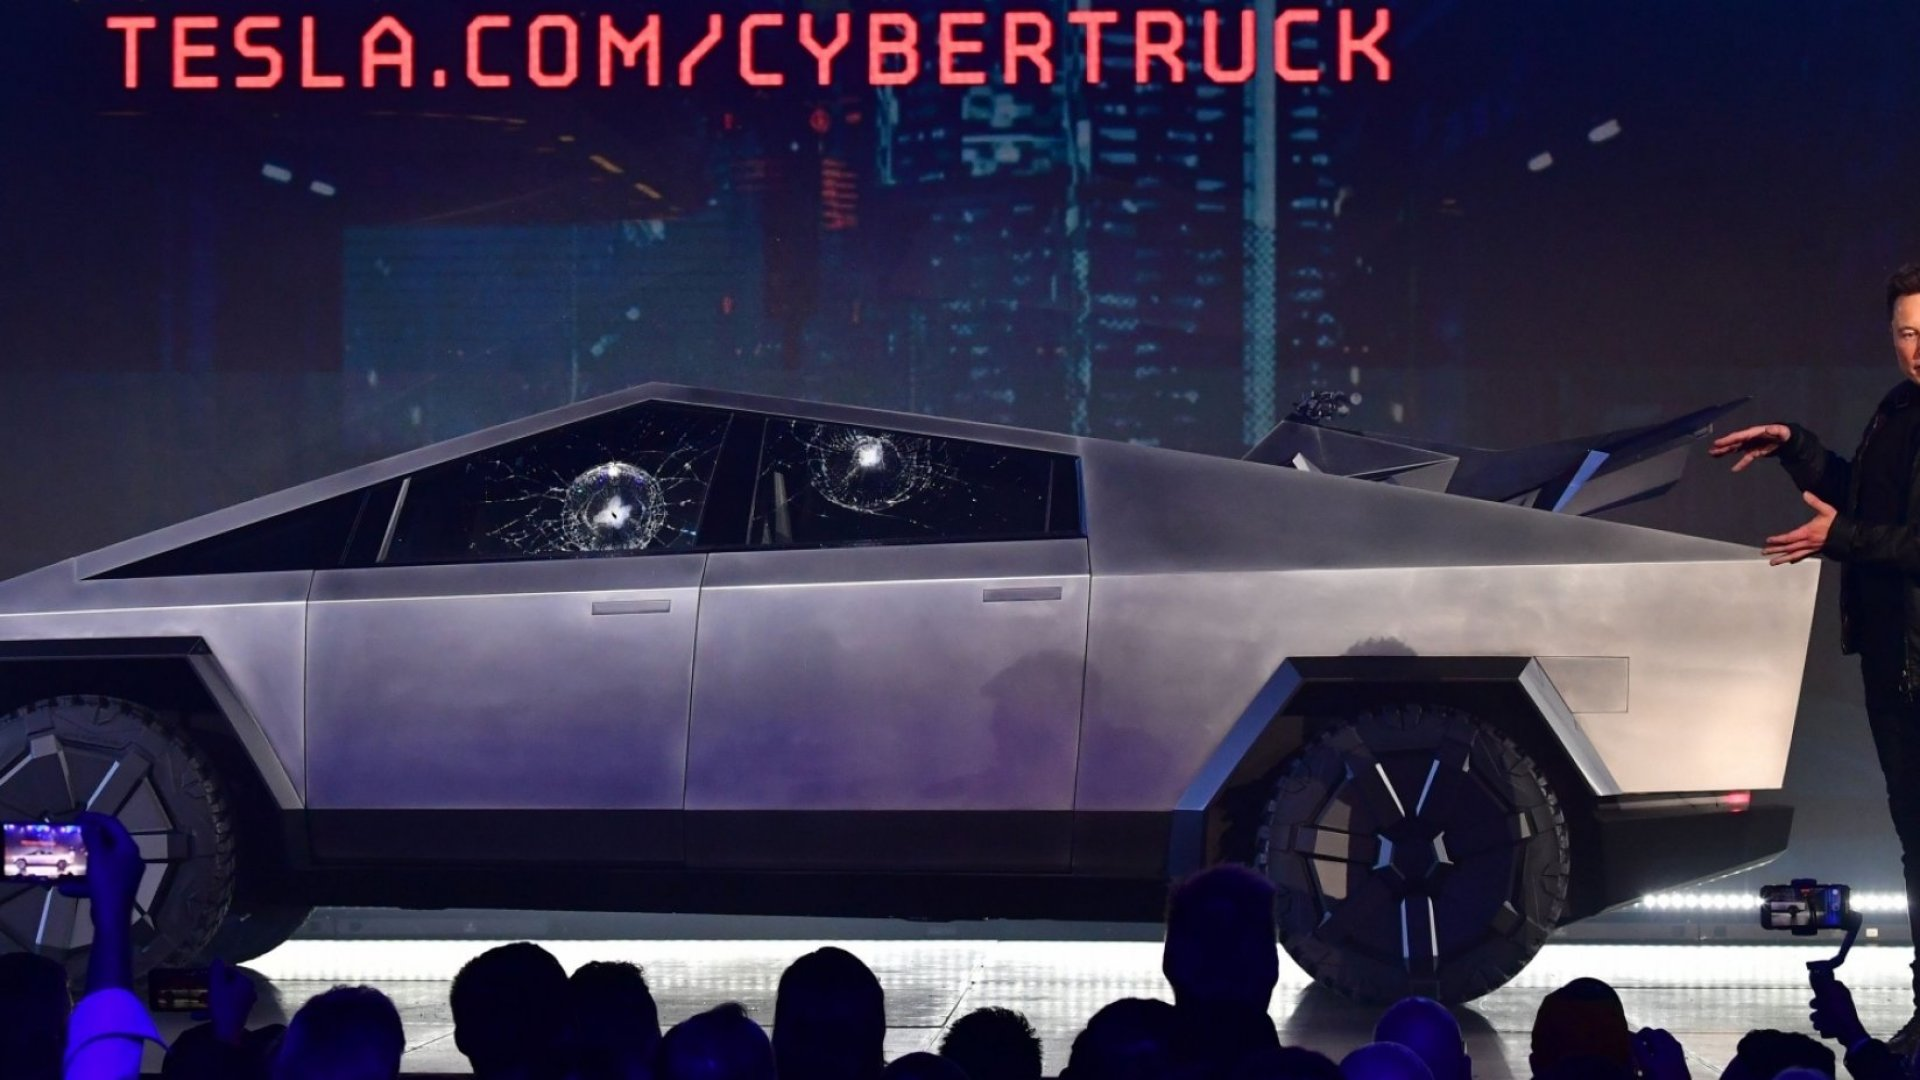 Elon Musk Explains Why Cybertruck Windows Were Broken During a Demo. People on Twitter Are Skeptical